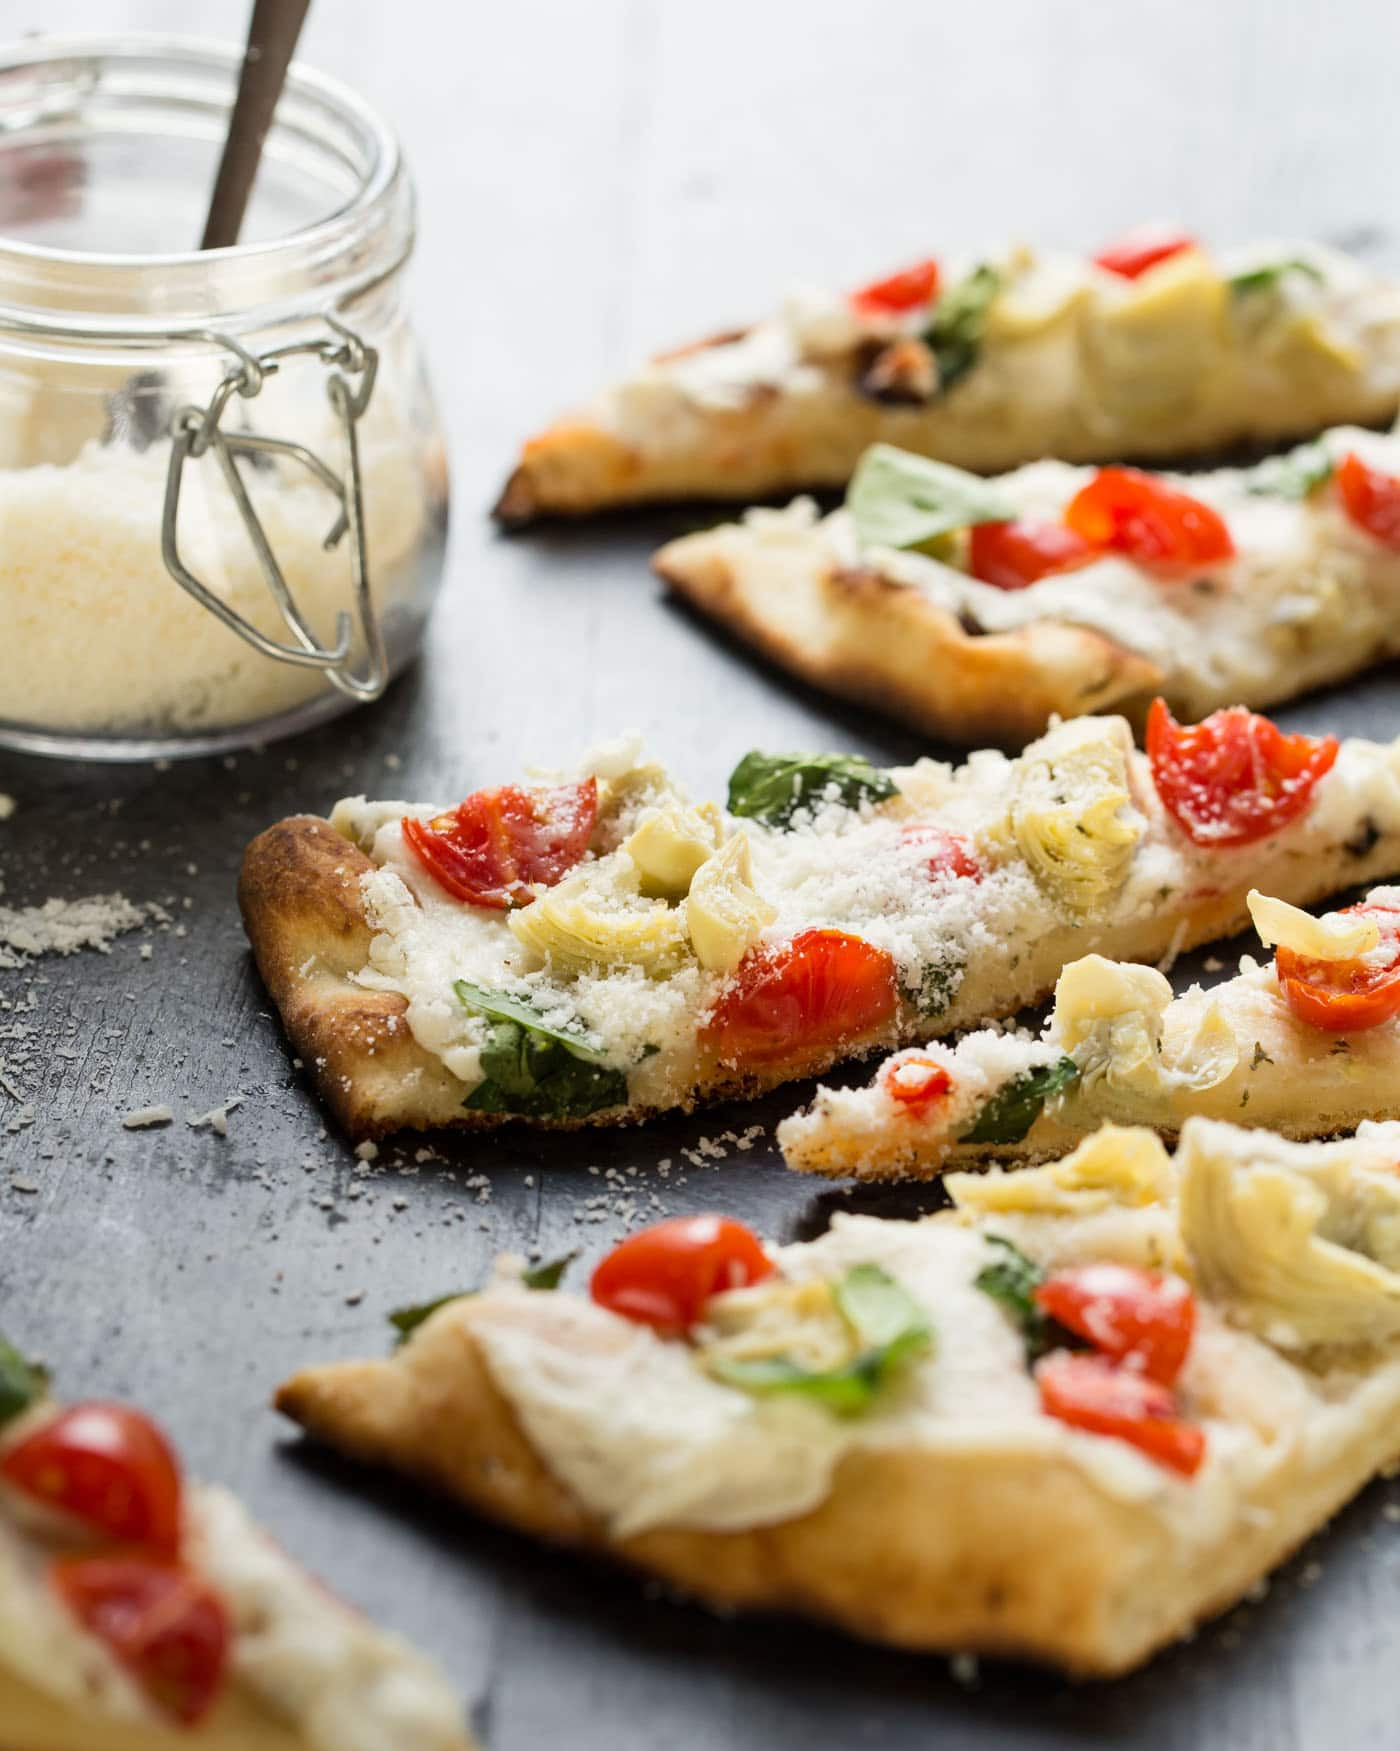 This quick and easy Grilled Vegetable Flatbread Pizza can be on the table in minutes using a few of my favorite supermarket shortcuts. Just as tasty hot or at room temperature!